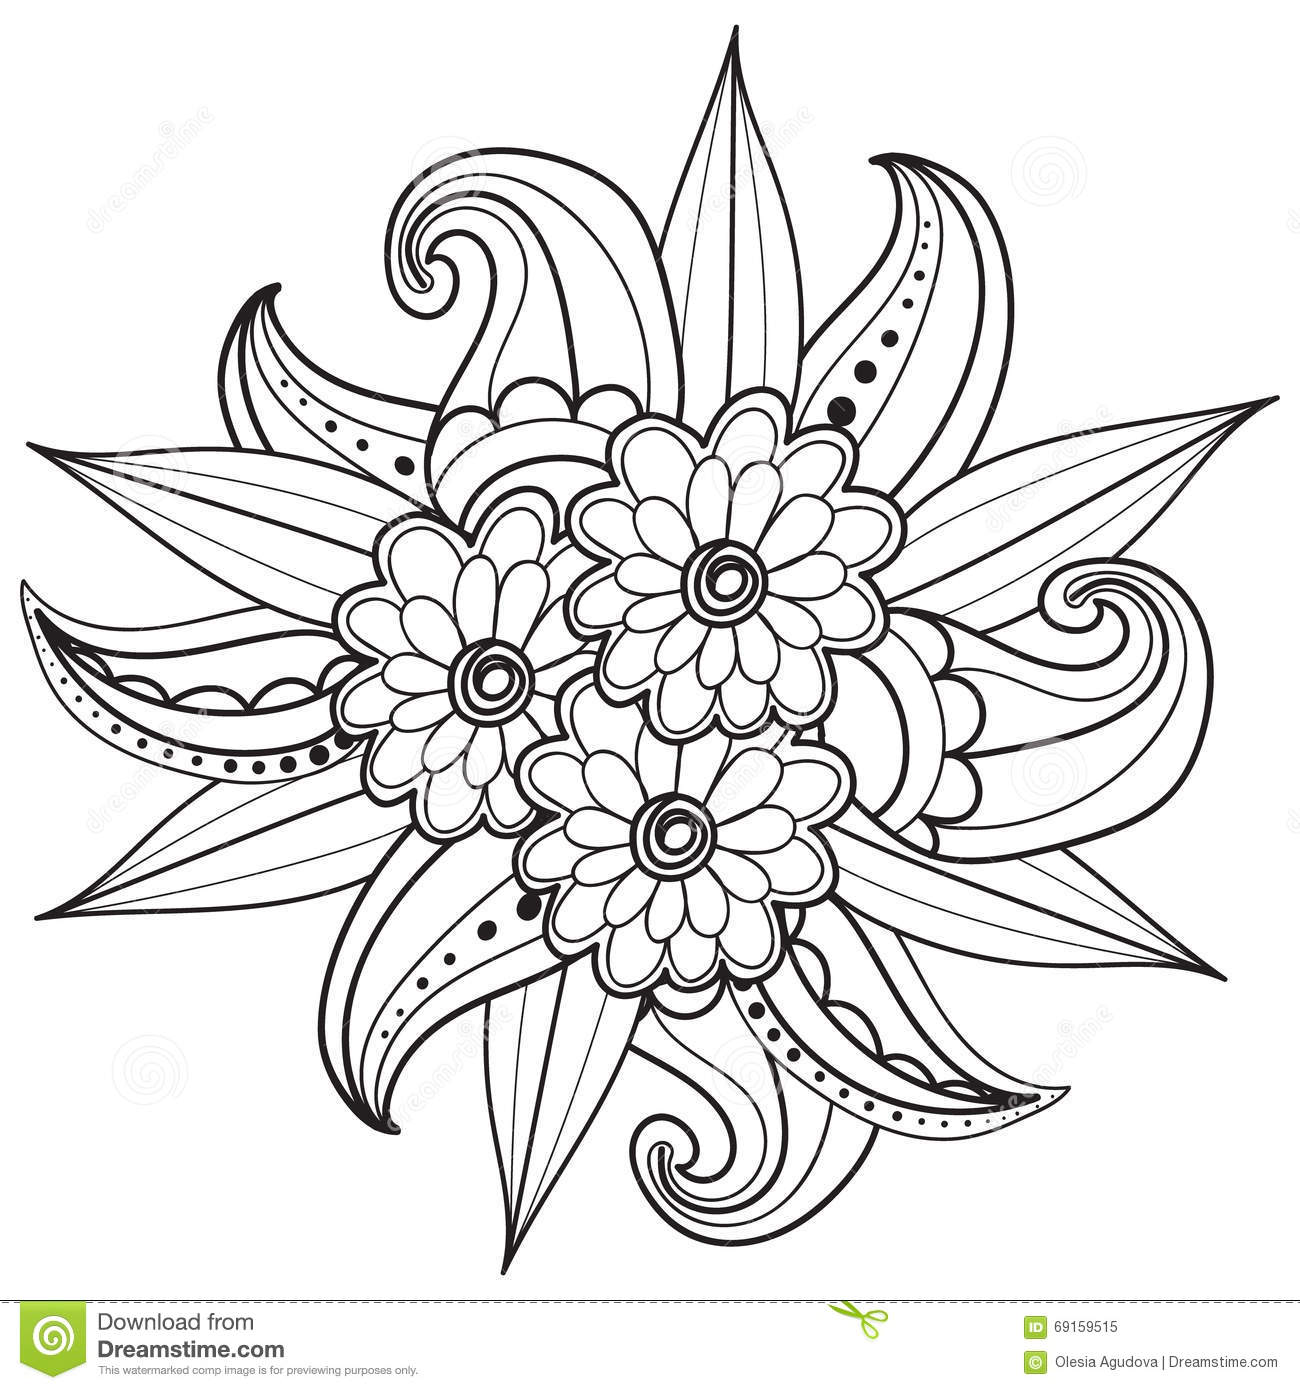 pages for adult coloring book hand drawn ornamental patterned floral frame in doodle style - Coloringbook Pages